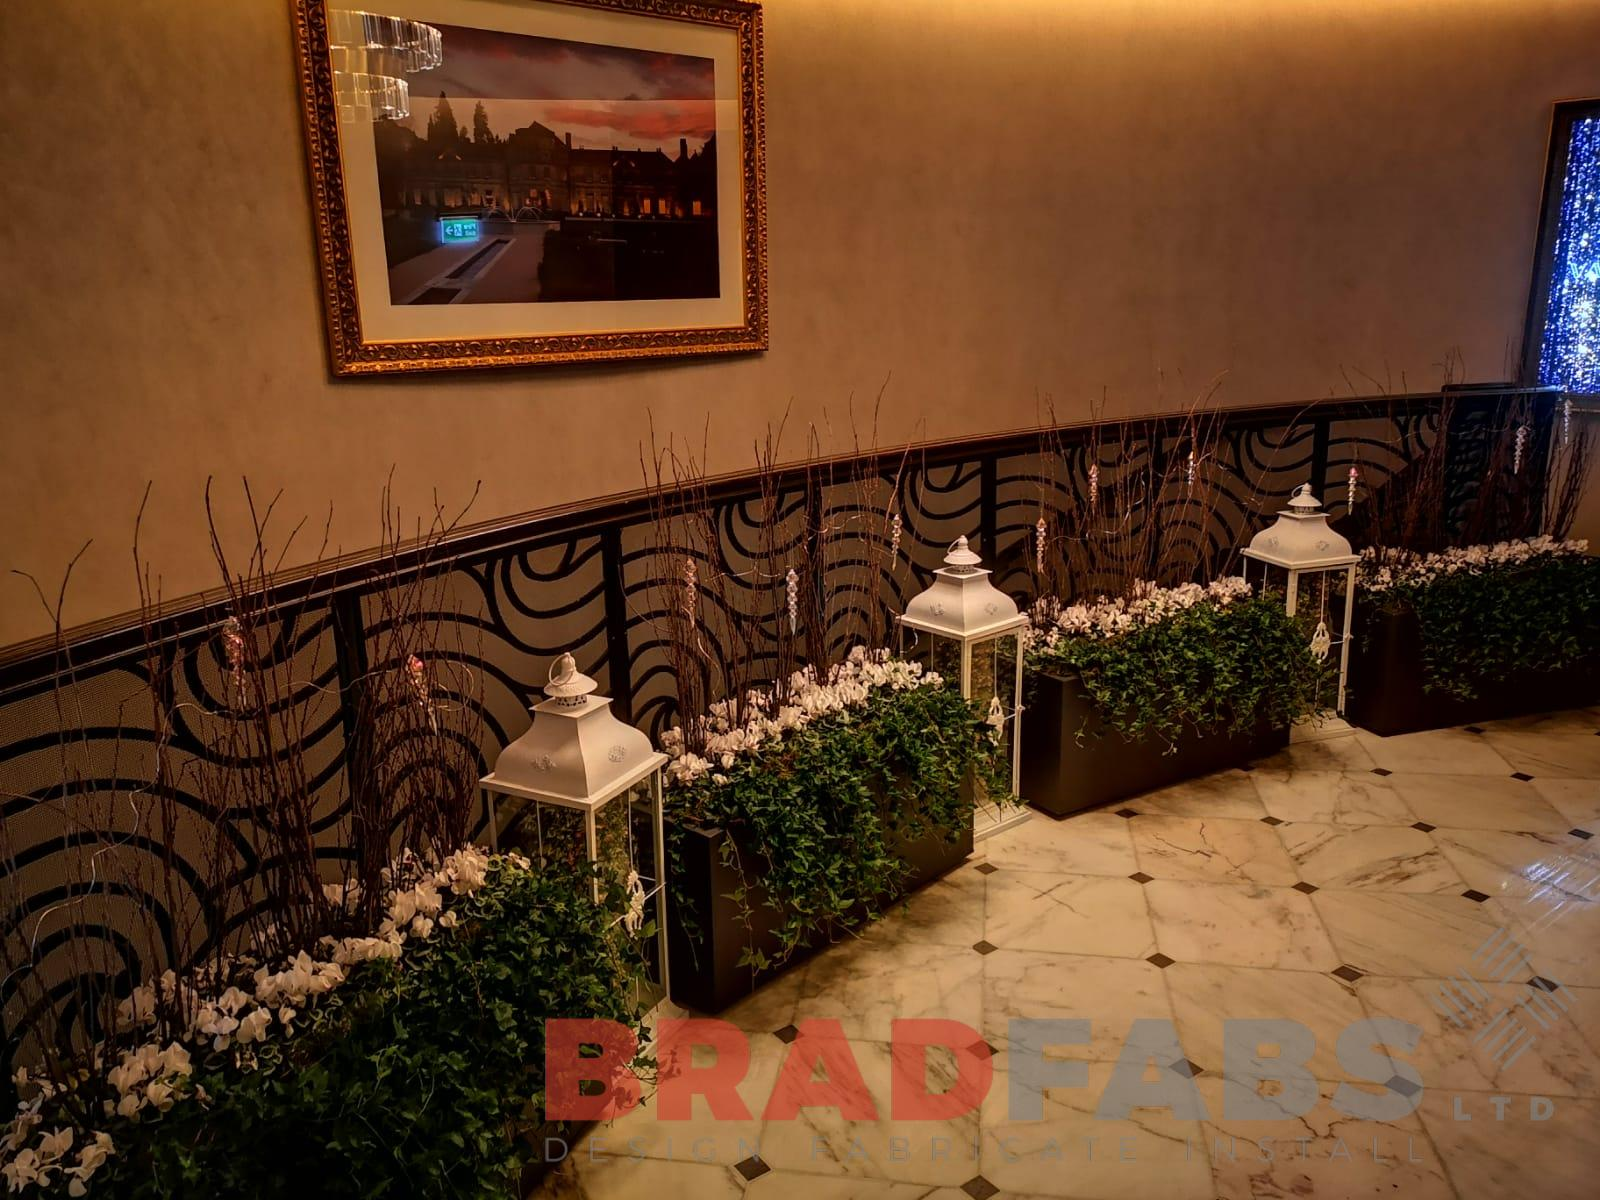 Decorative ornate metal balustrade